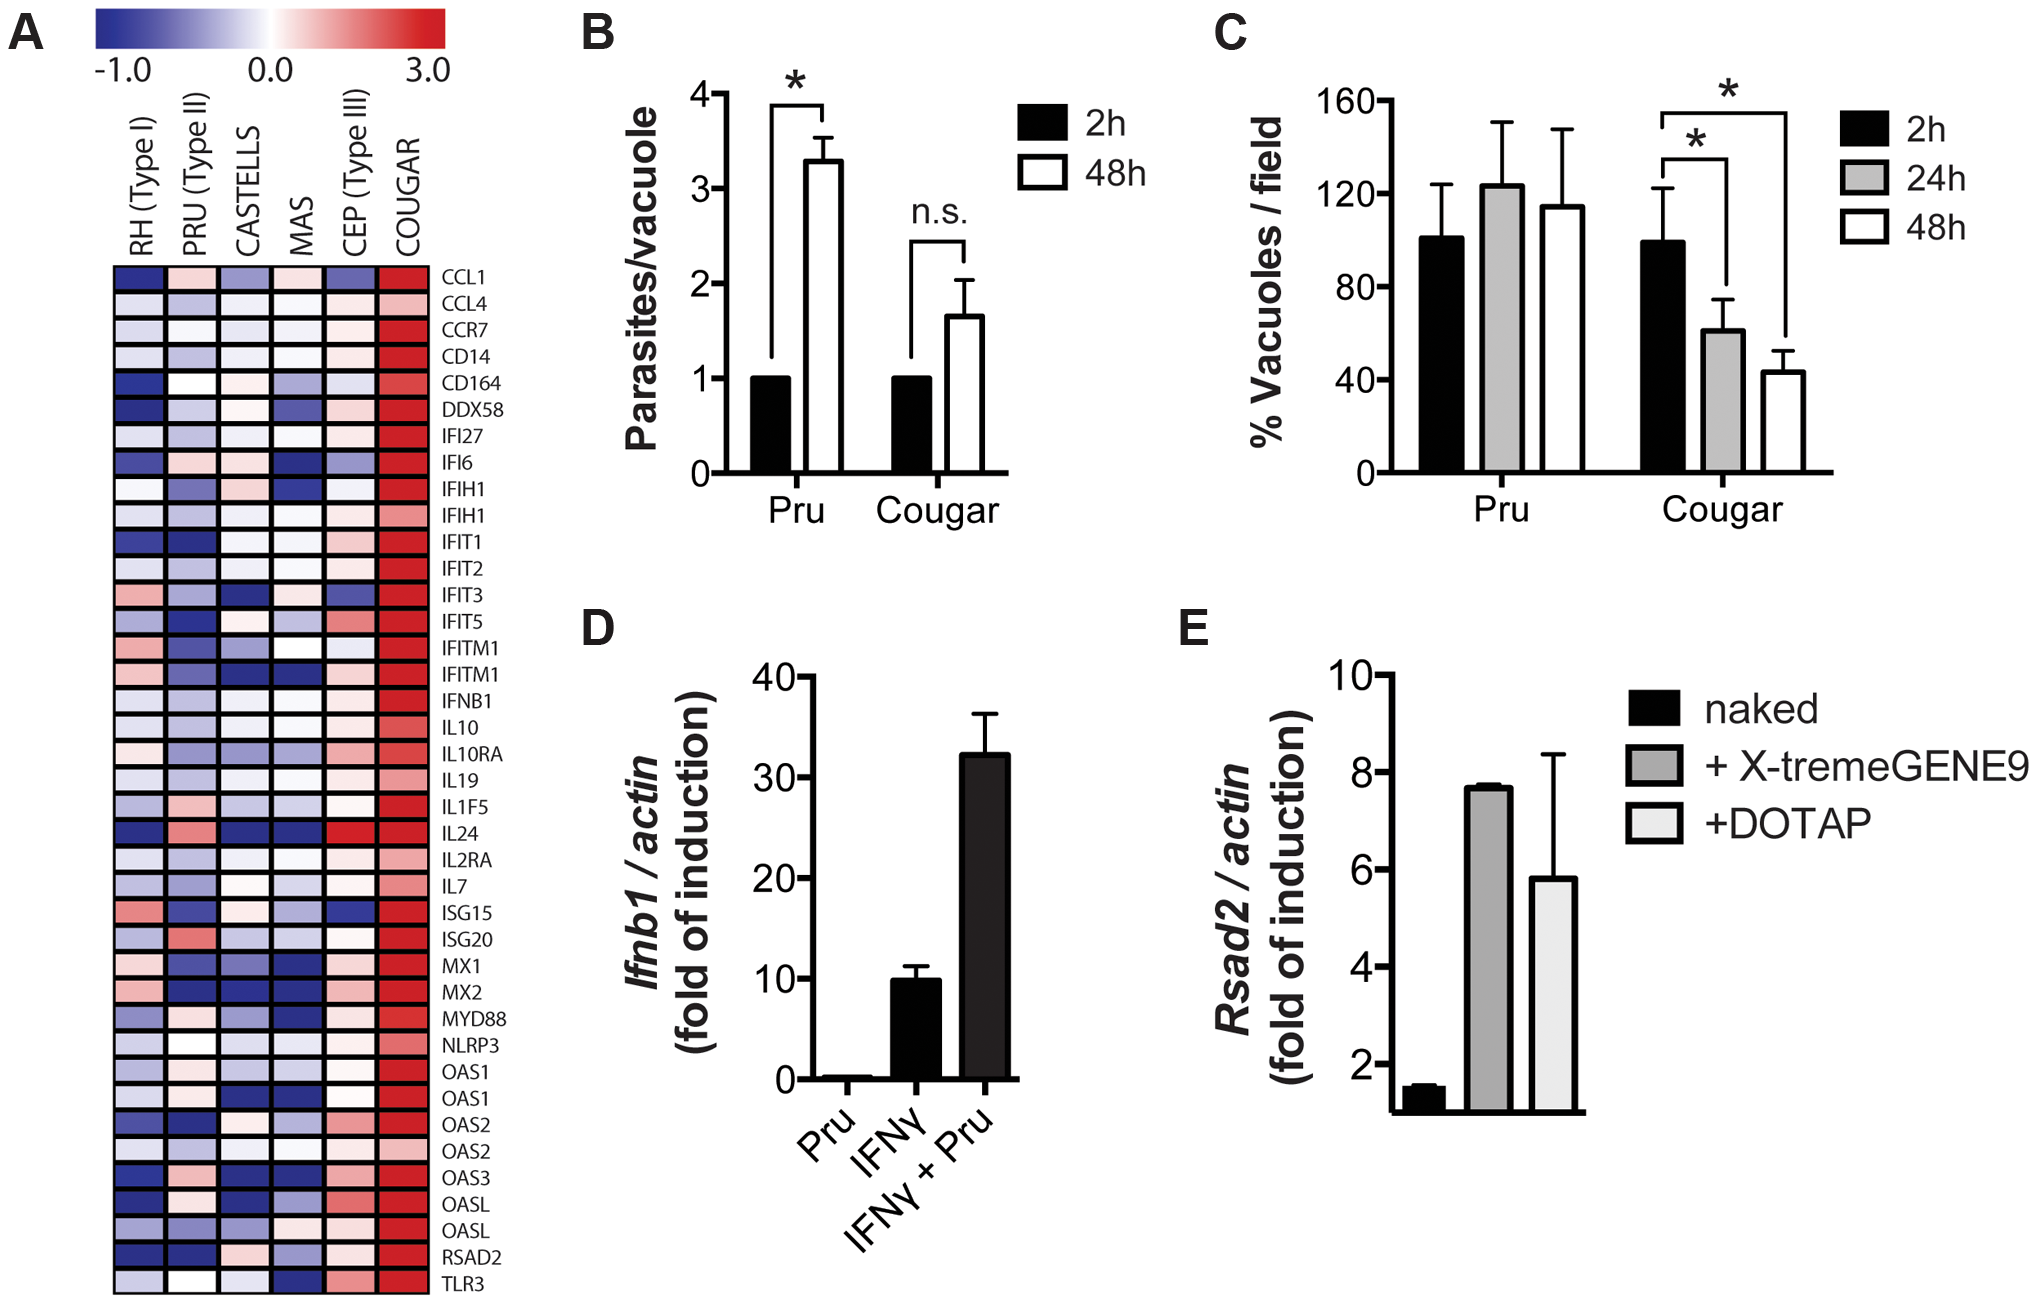 Killing of intracellular parasites is associated with IFNβ production.